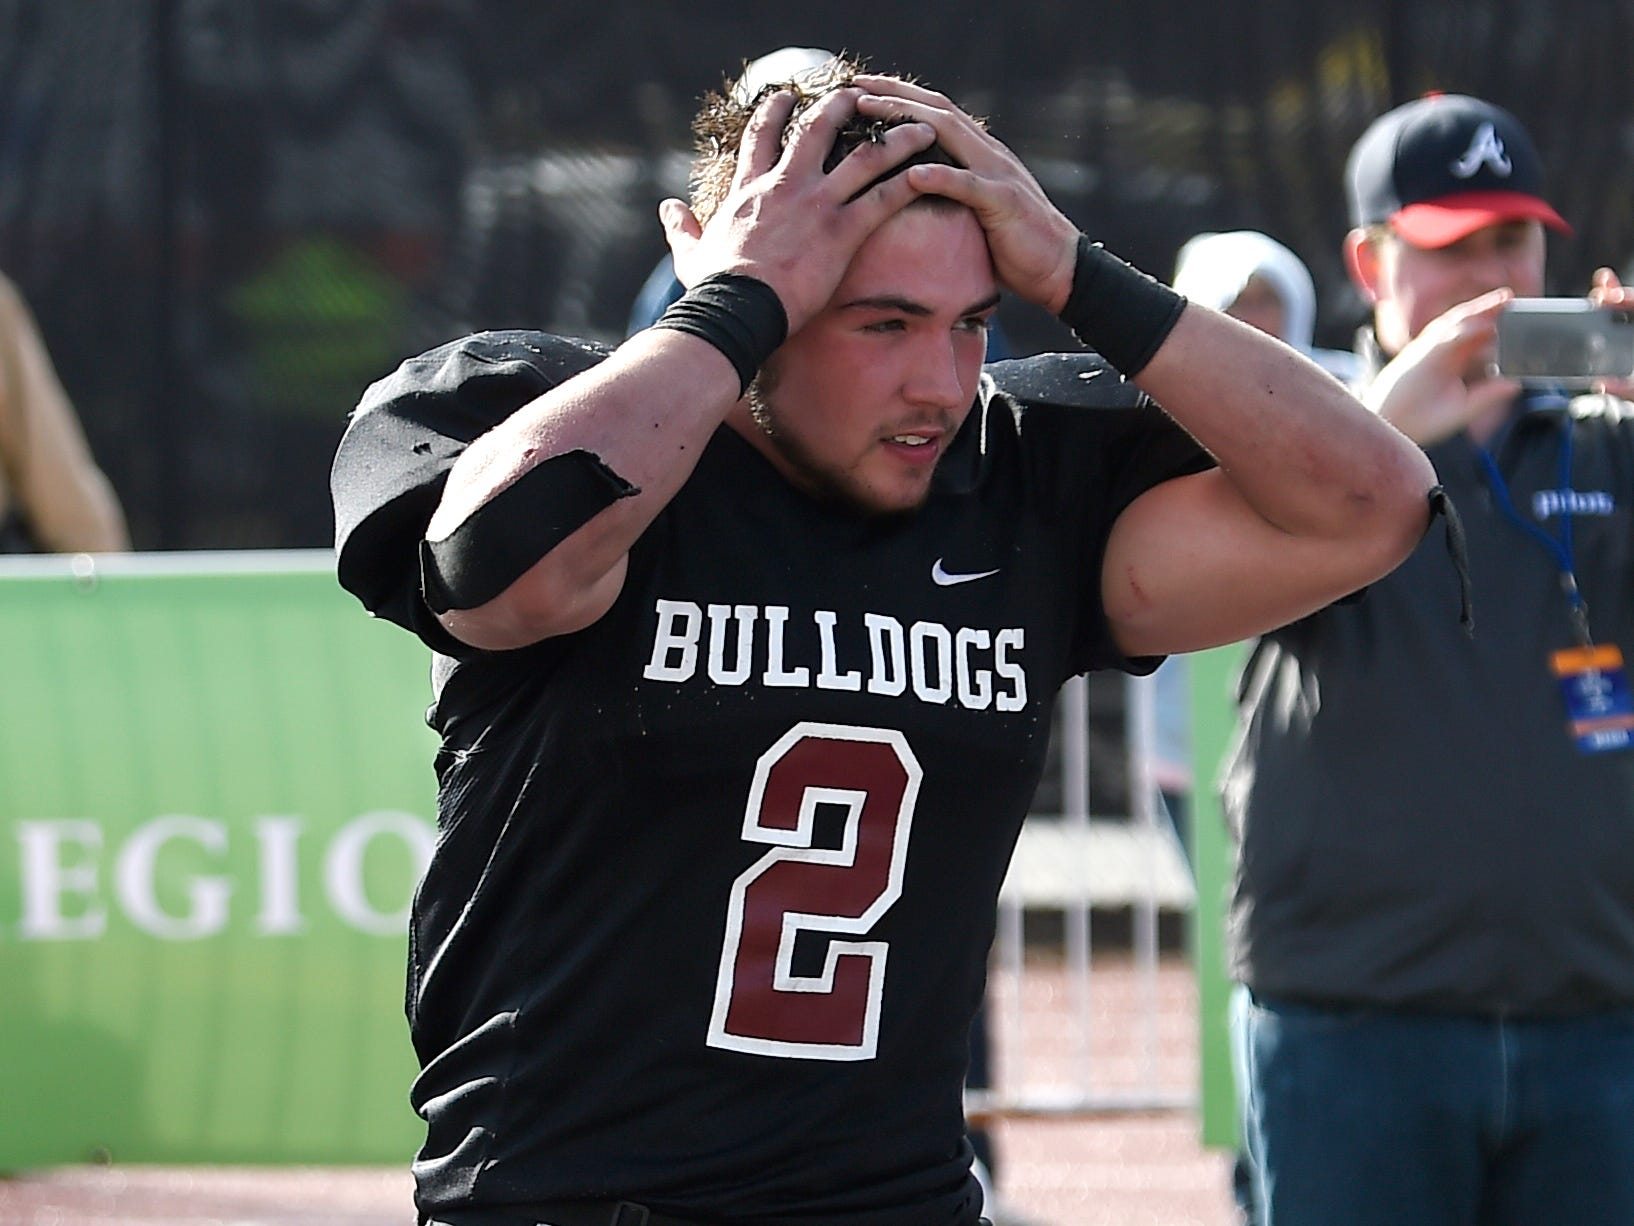 Cornersville's Trenton Warren (2) reacts to his team's loss to Whitwell in the Class I-A BlueCross Bowl state championship at Tennessee Tech's Tucker Stadium in Cookeville, Tenn., on Saturday, Dec. 1, 2018.